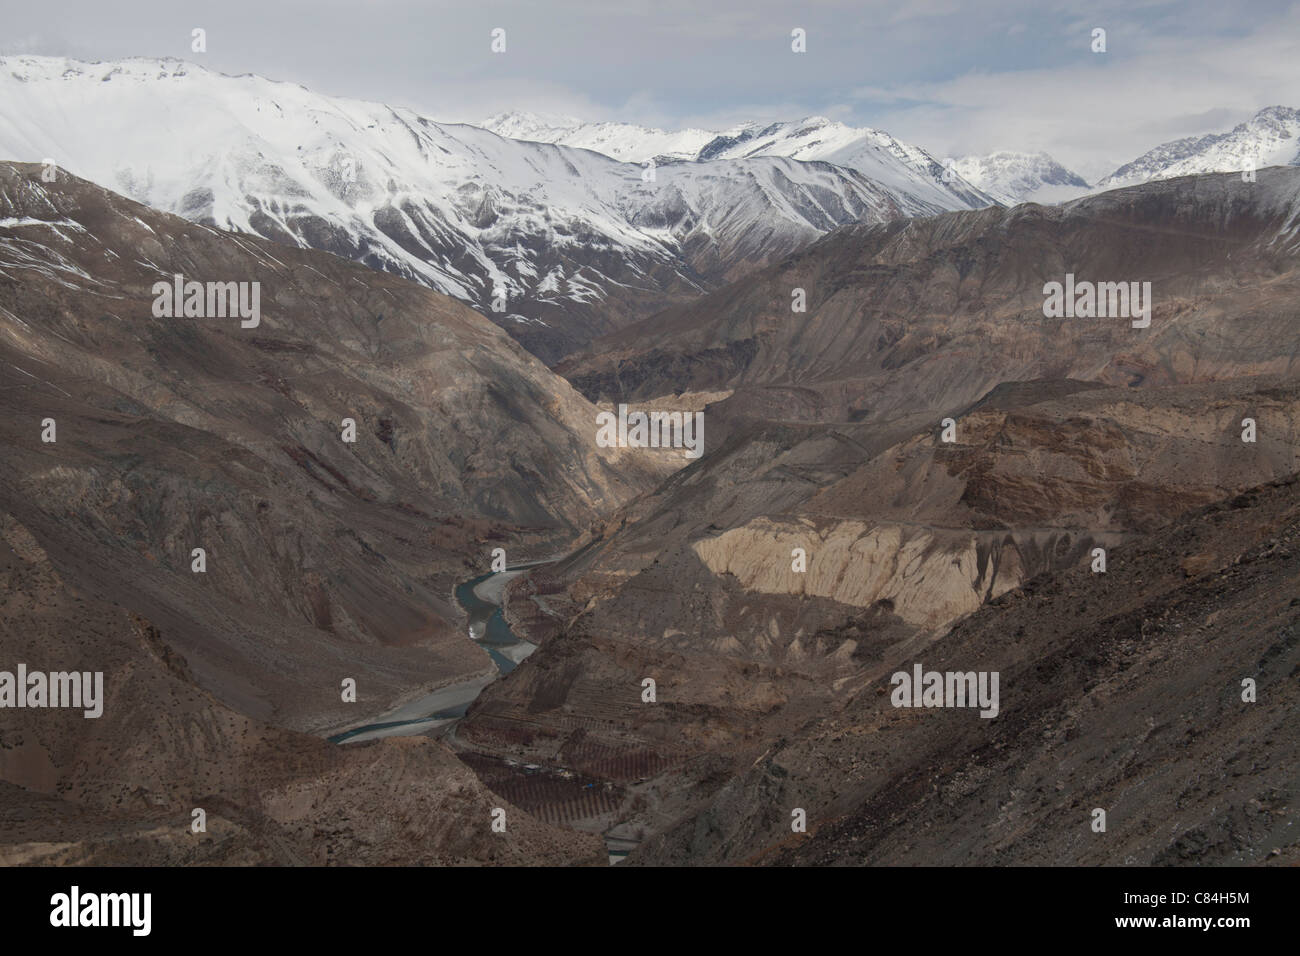 Mountain Peaks, Spiti Valley Himachal Pradesh, India - Stock Image